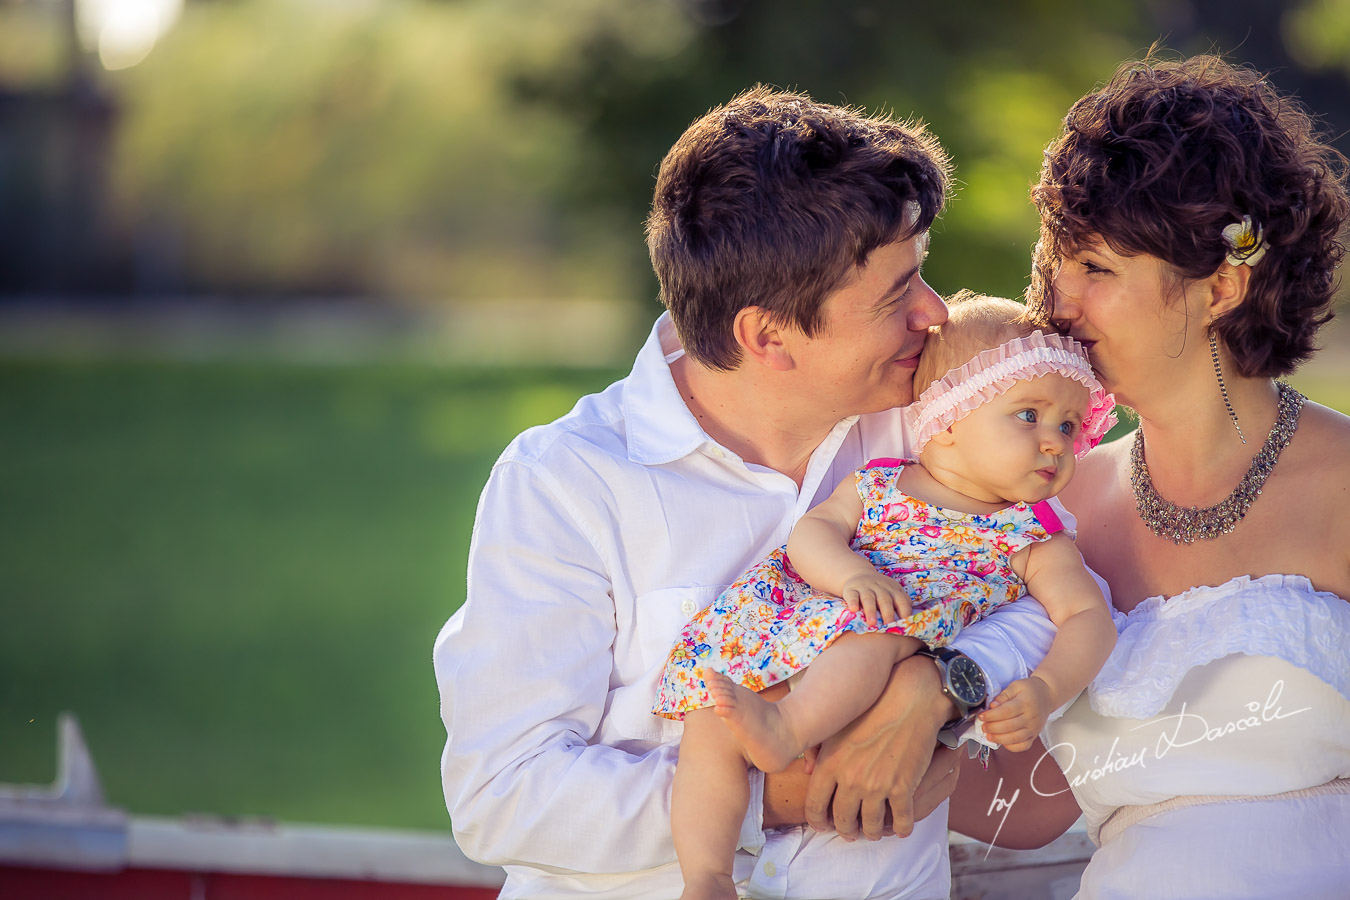 Family Photography in Limassol - Val, Val & Sofia-Aida 05